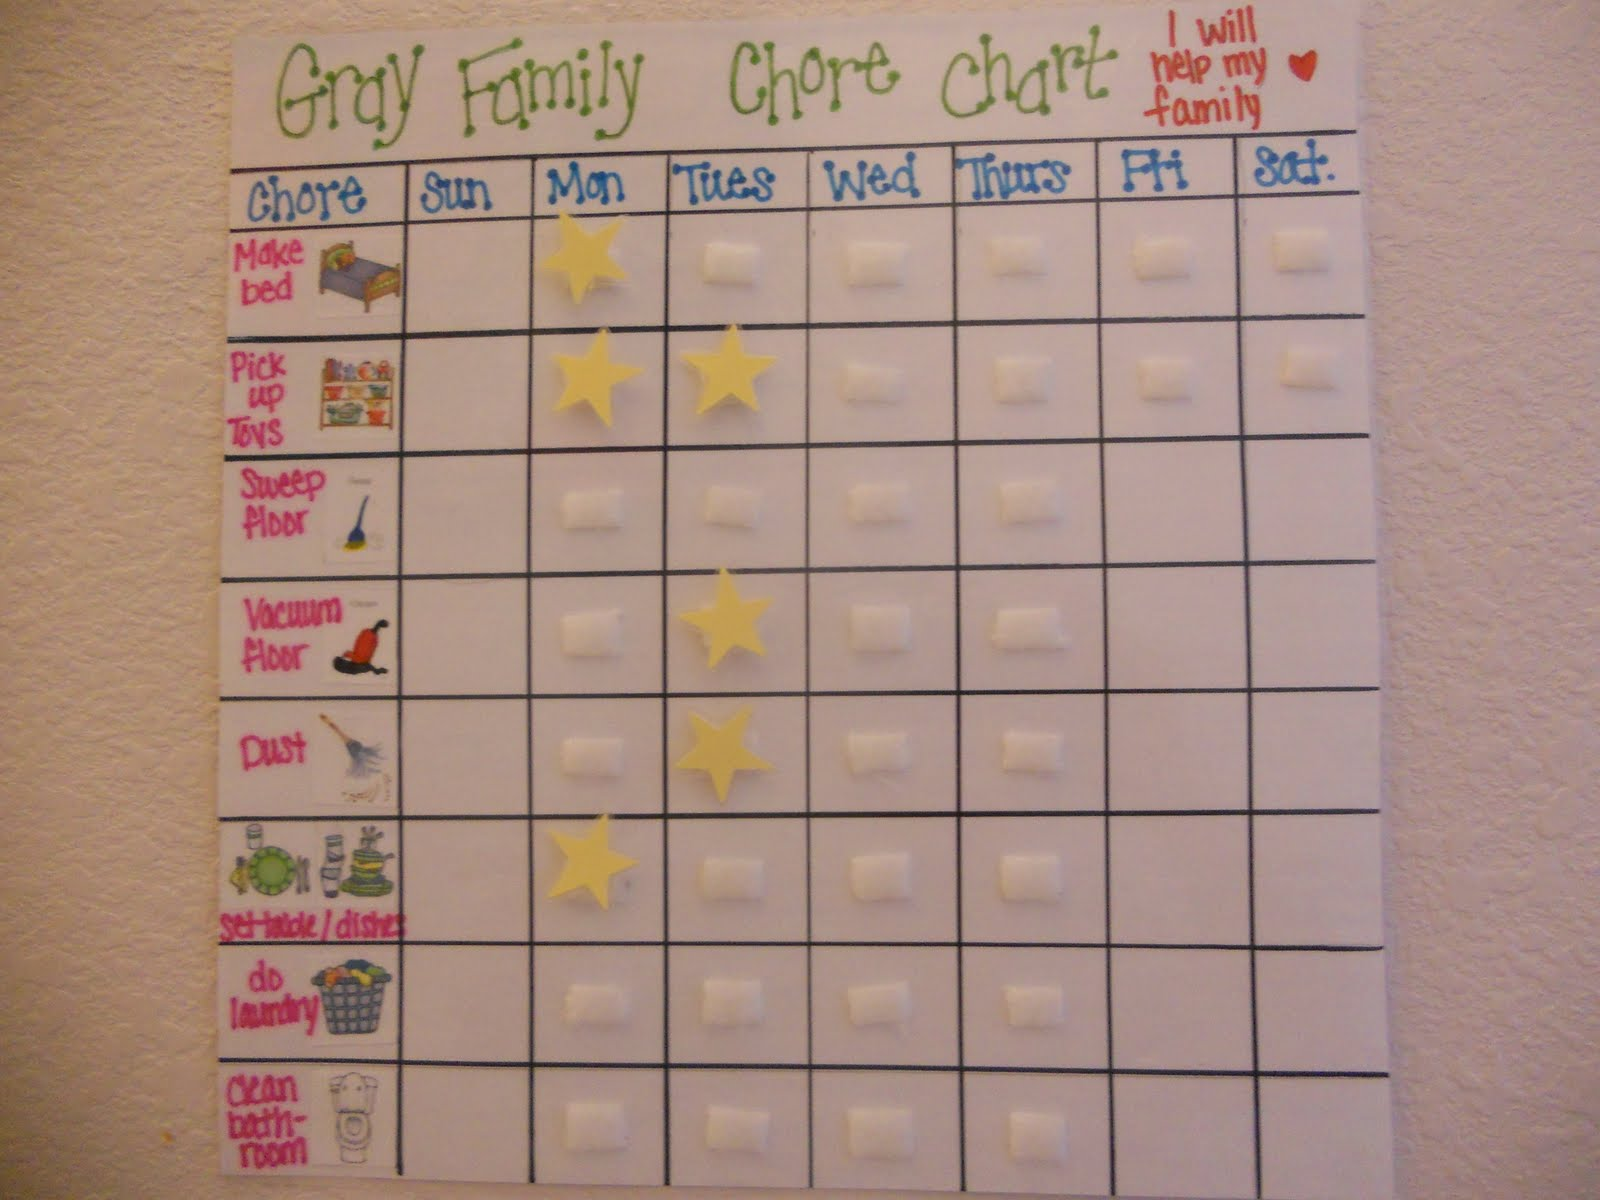 chore list template for kids - for my kids chore chart for the little ones